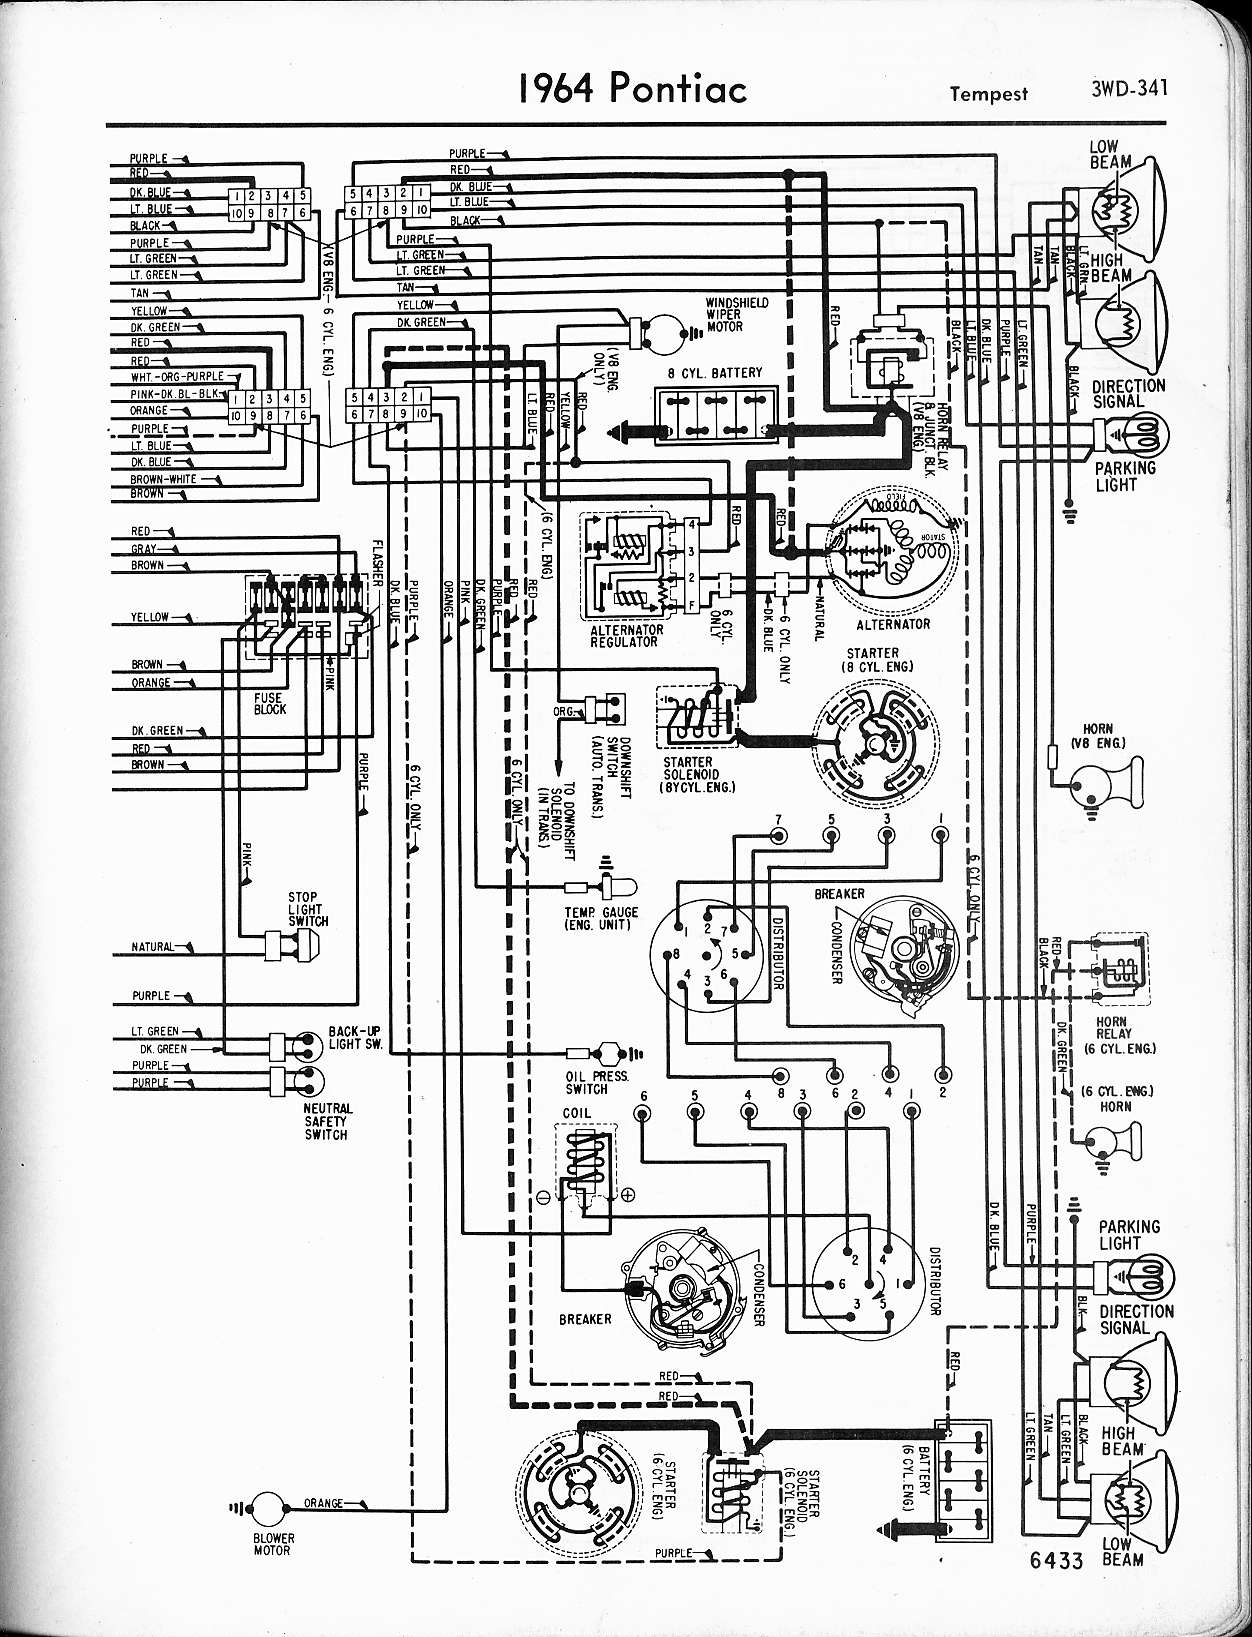 1970 pontiac catalina wiring diagram imageresizertool com 1967 gto heater wiring  diagram 67 GTO Engine Wiring